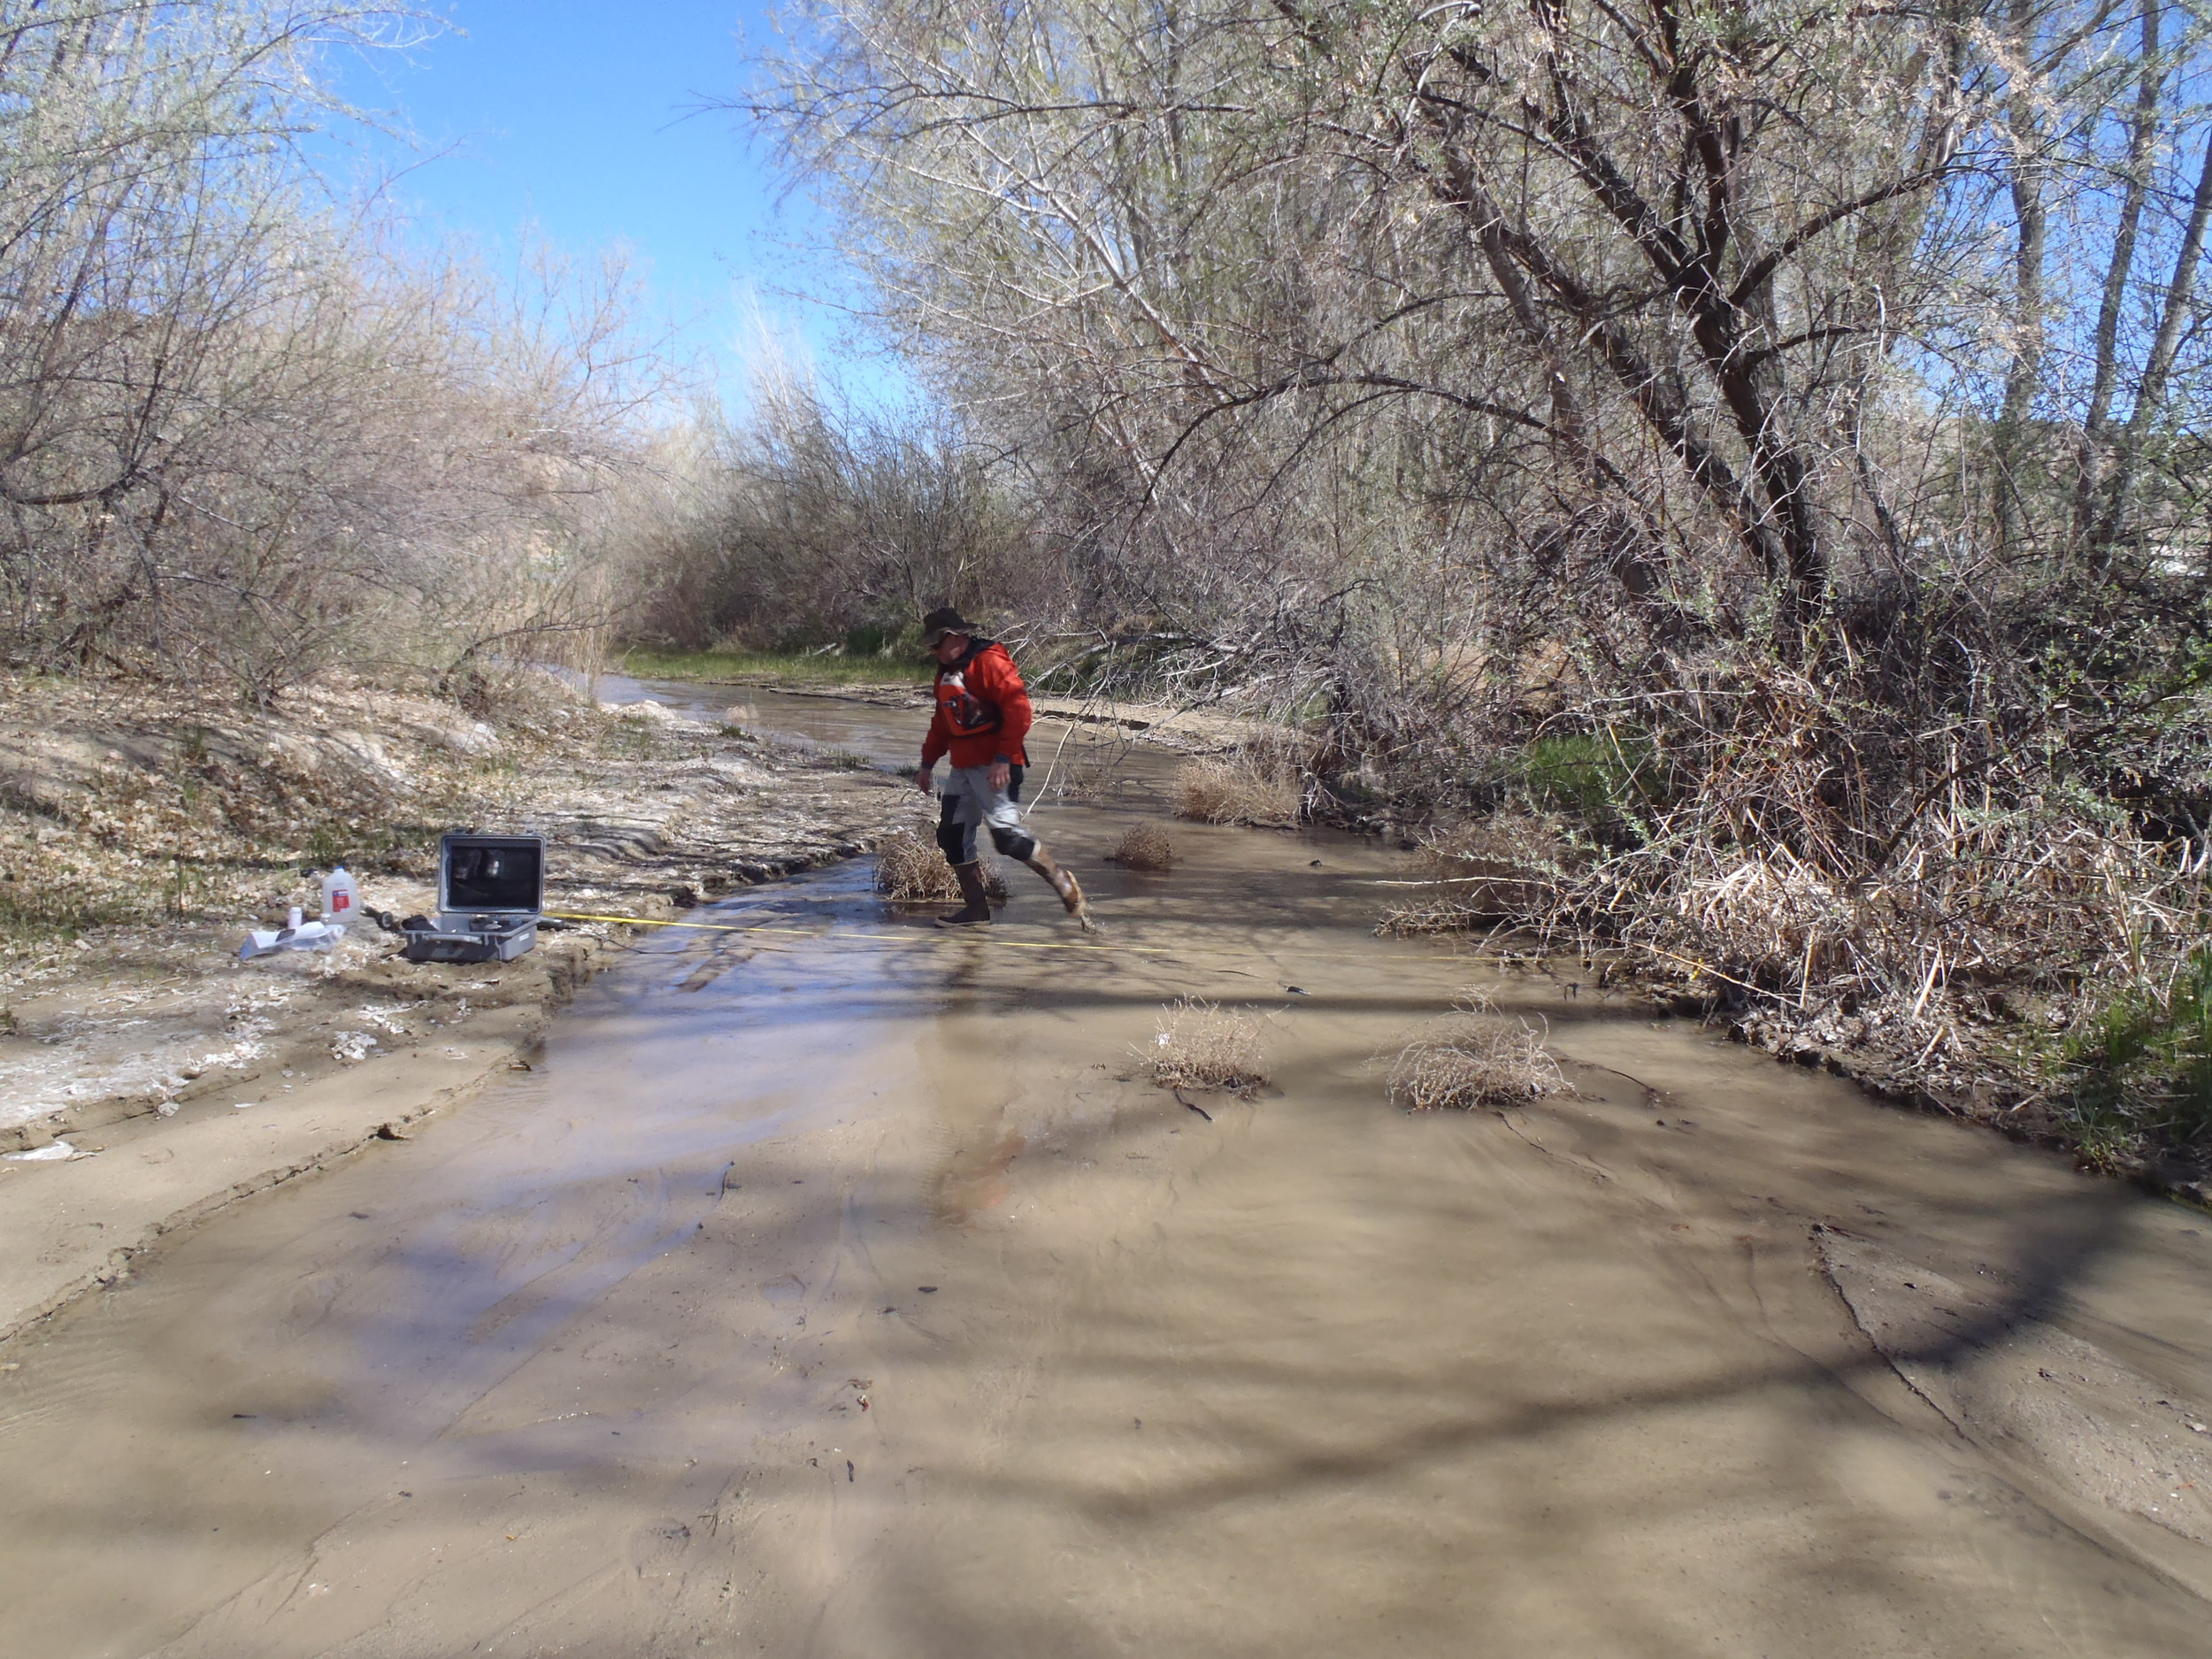 Aaron Kimple measuring flow of an arroyo that inputs to the Animas River near Farmington, NM.